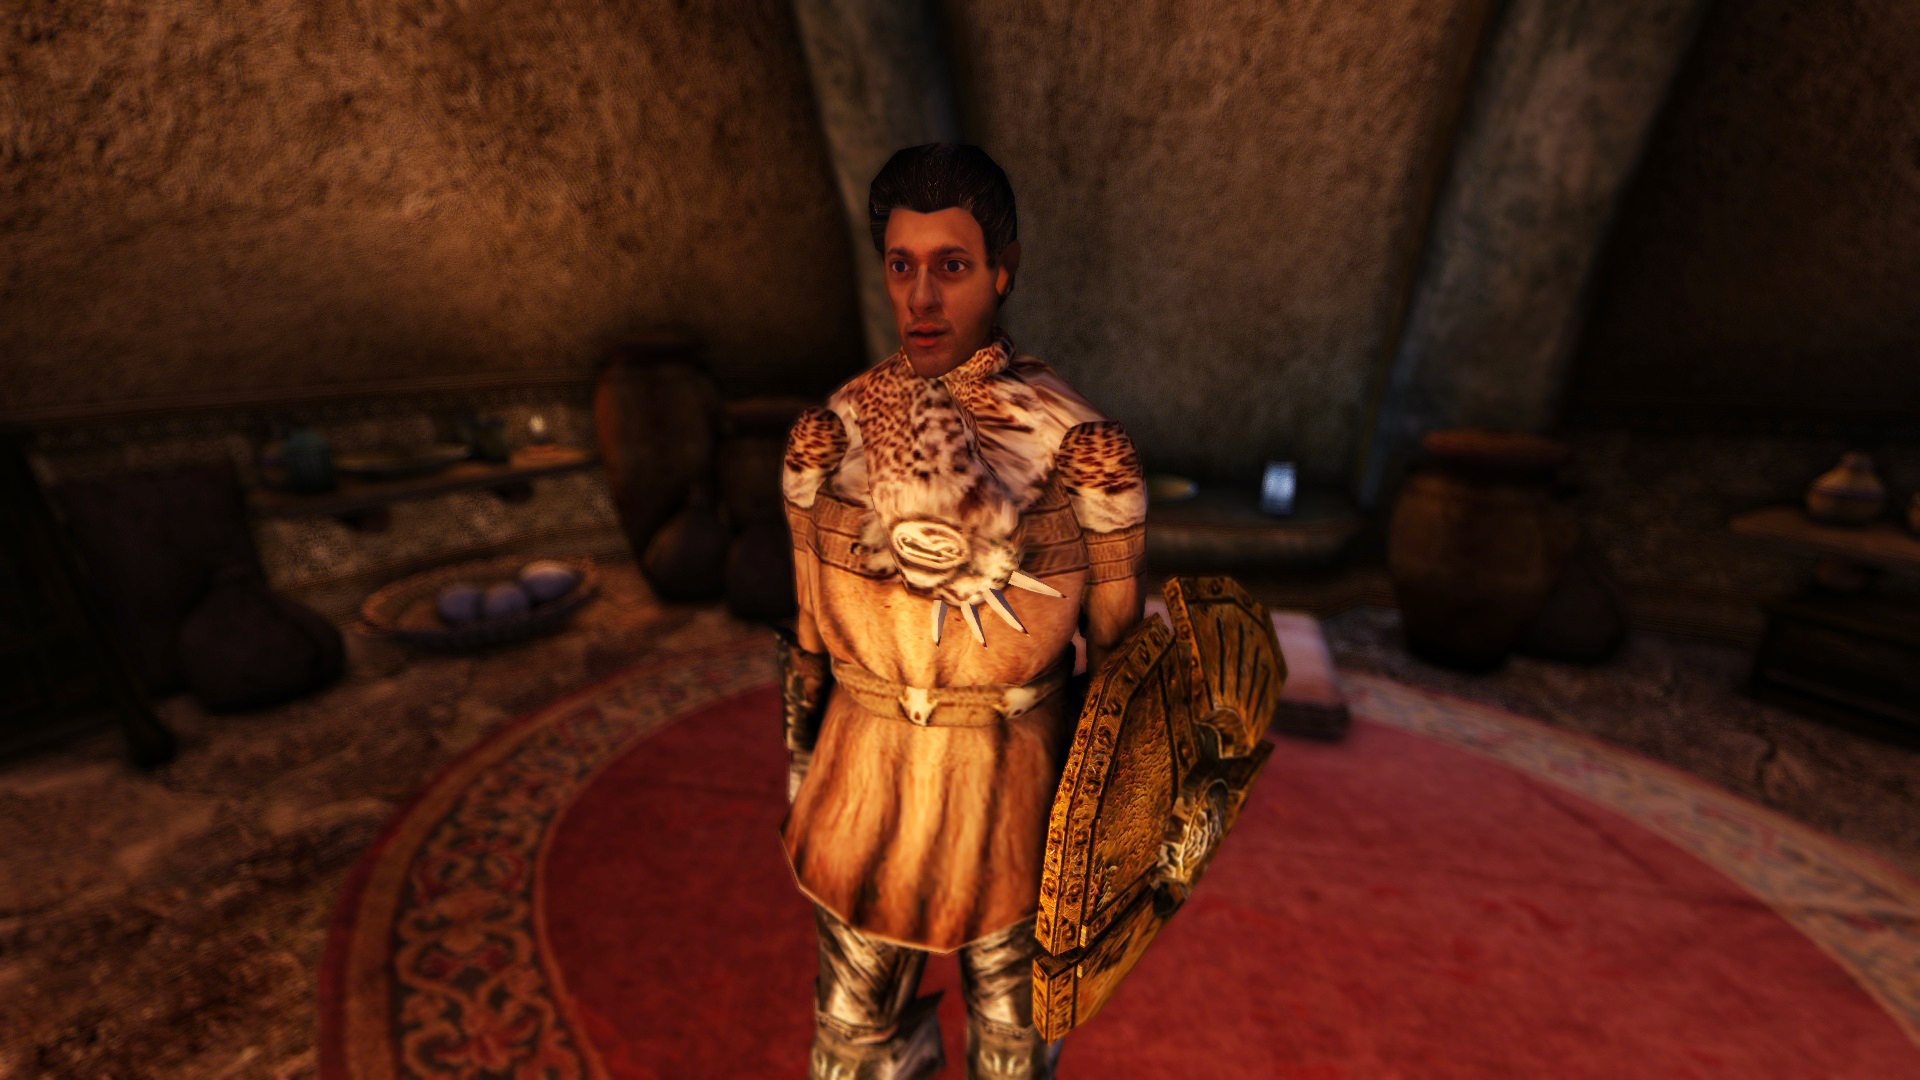 My face in Morrowind